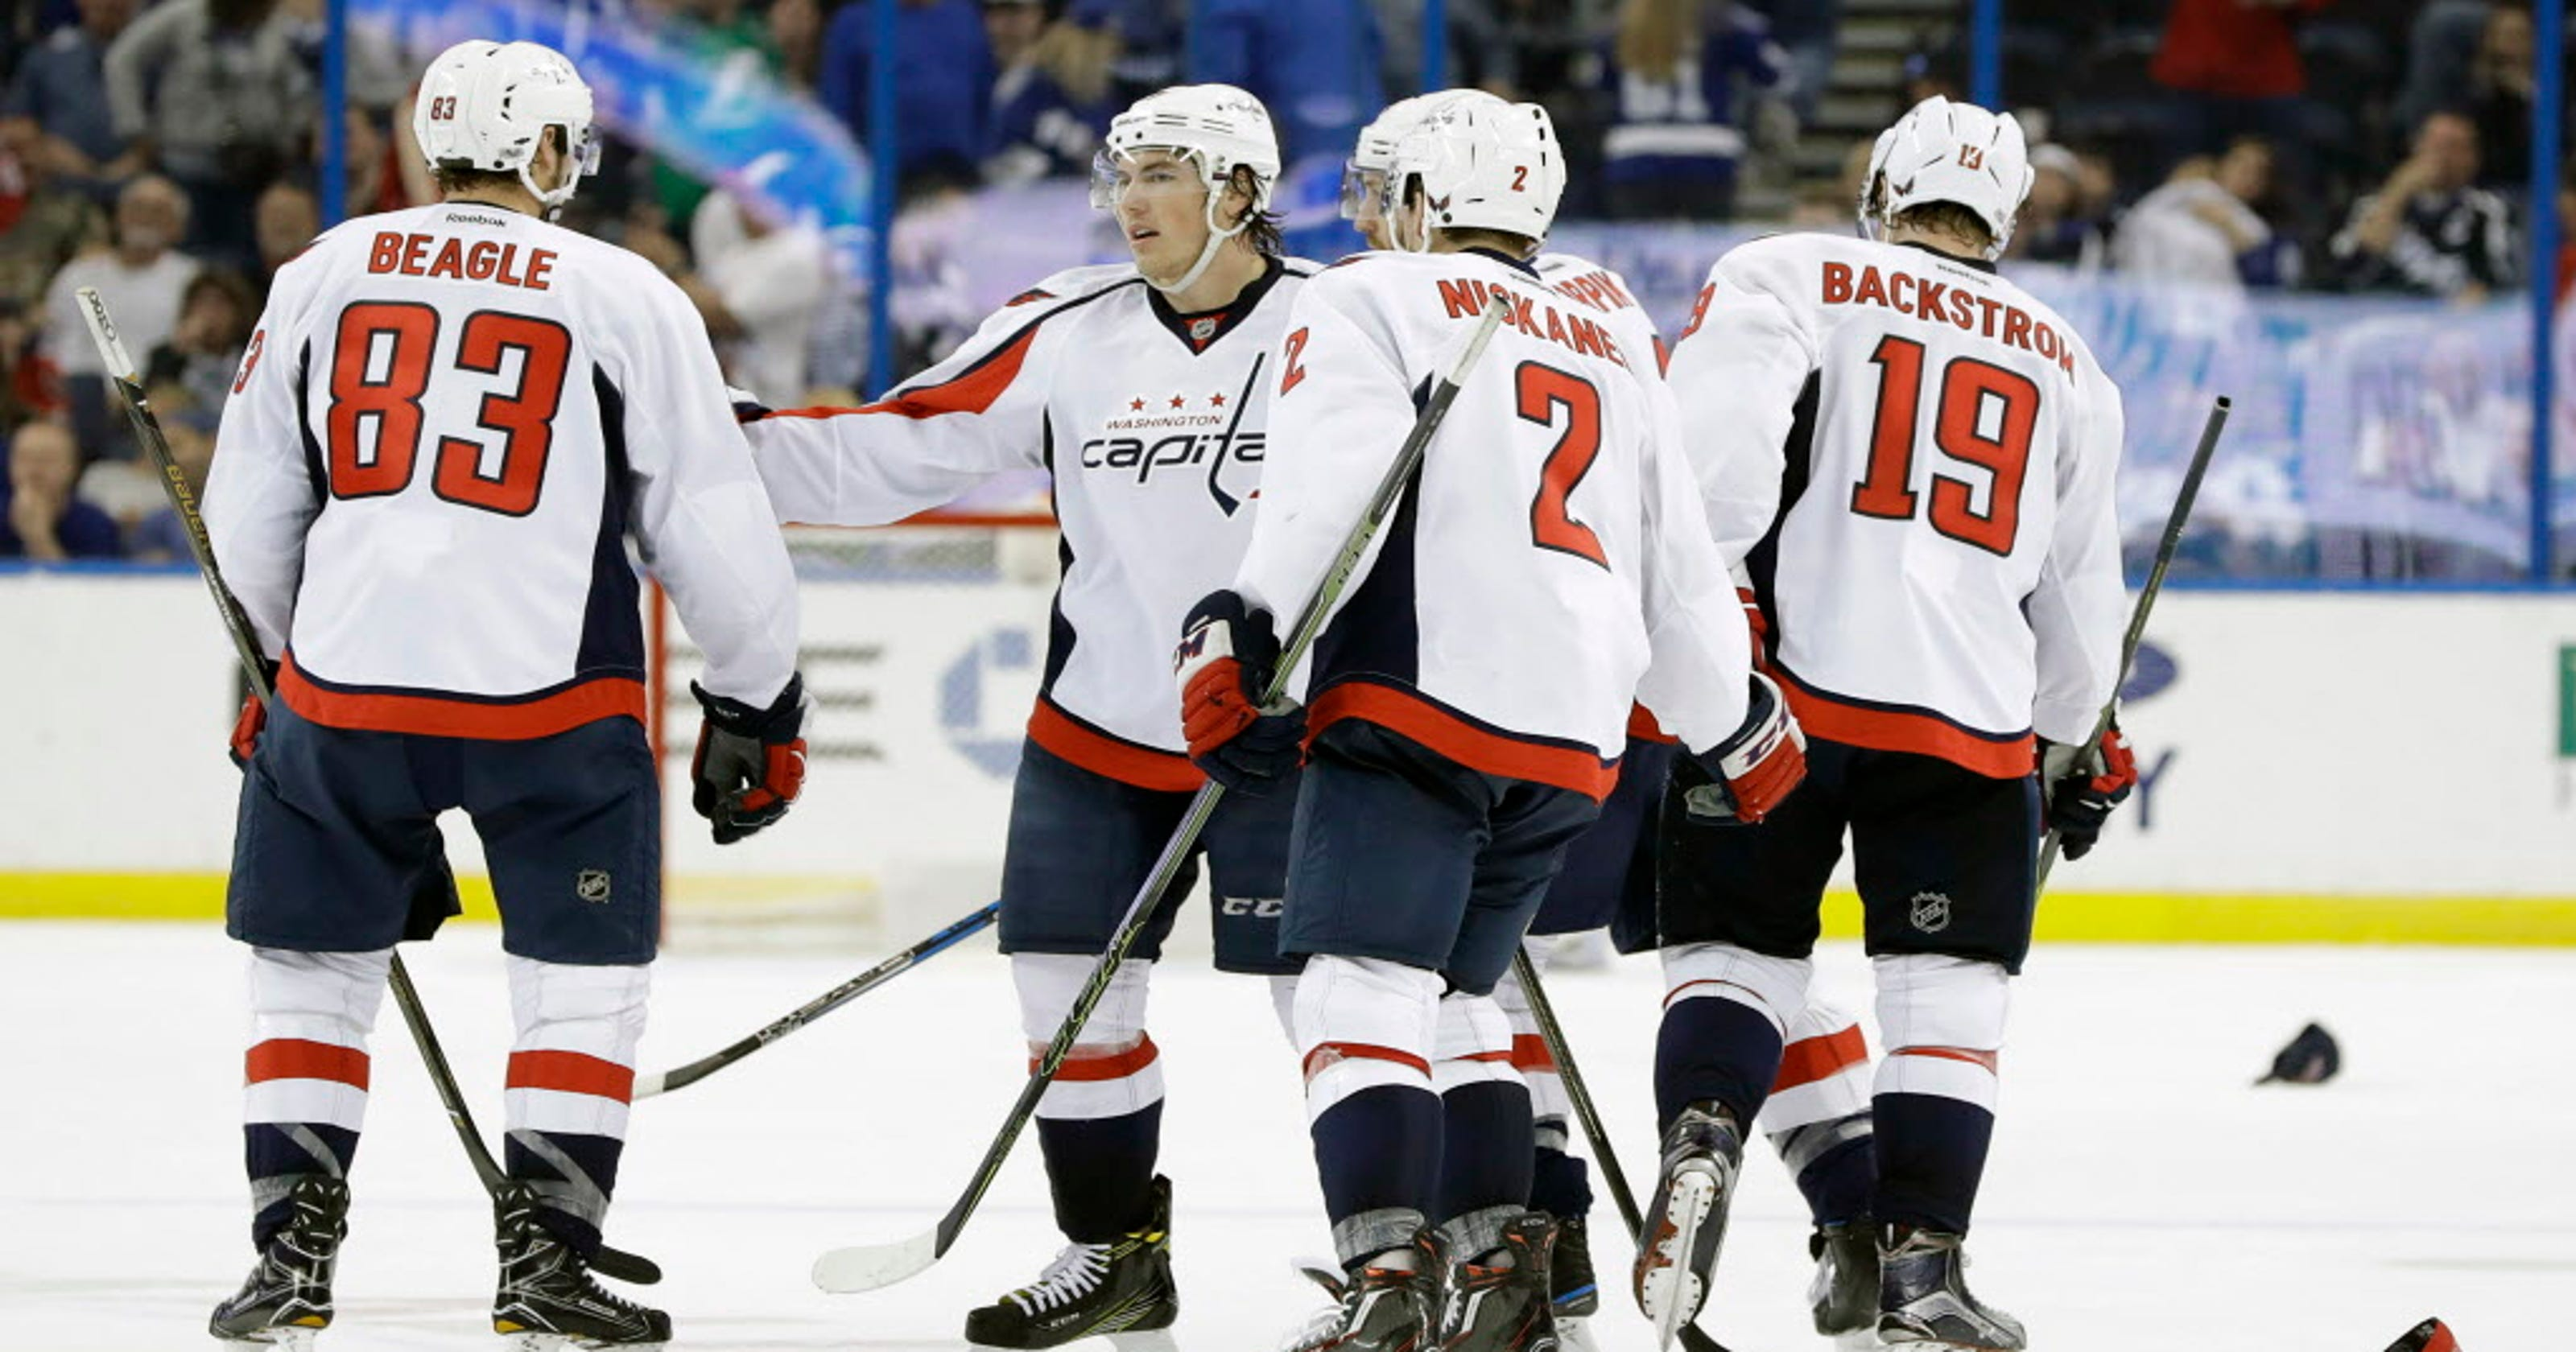 7cd8a60c1a0 T.J. Oshie s hat trick helps Capitals become NHL s first playoff team